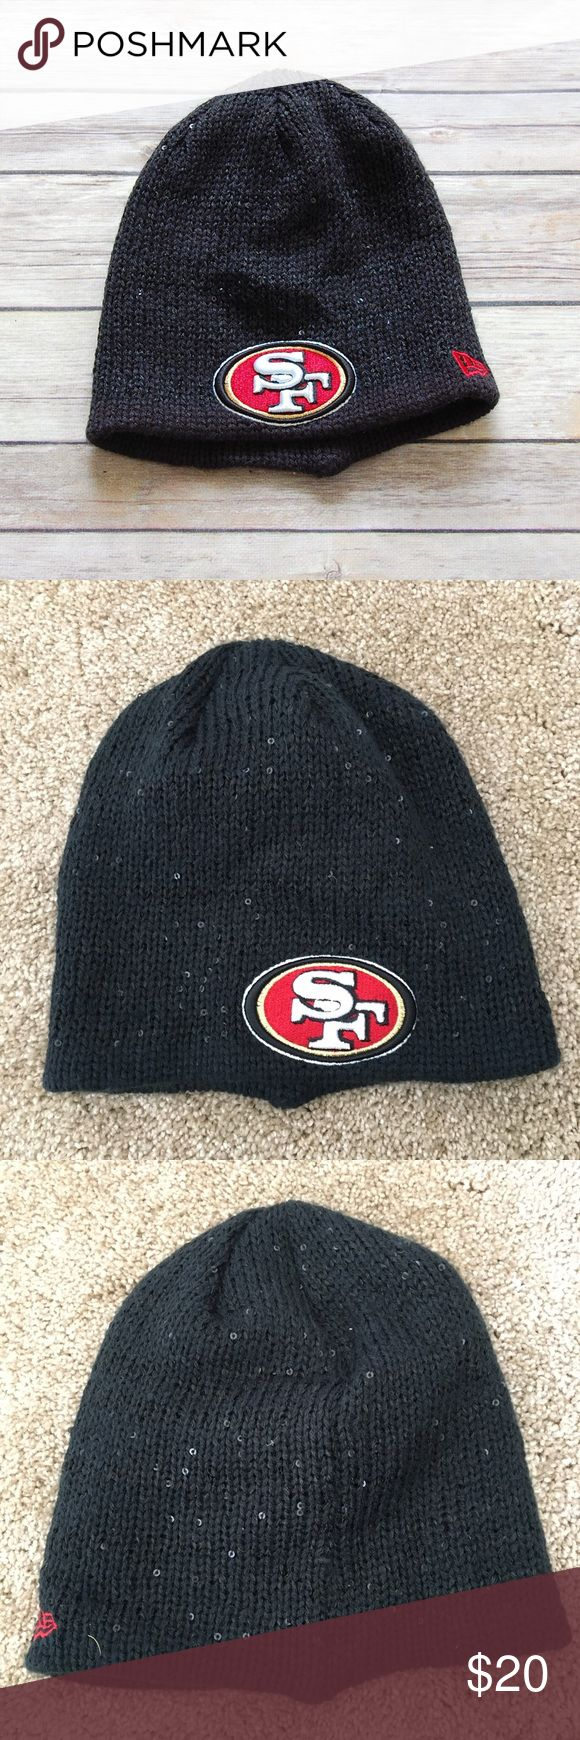 NEW ERA 'SF Niners' Beanie Practically new knit black and sequined beanie. Embroidered San Francisco 49ers logo. Official NFL gear. One size fits most.    Instagram: @bringingupsuns New Era Accessories Hats